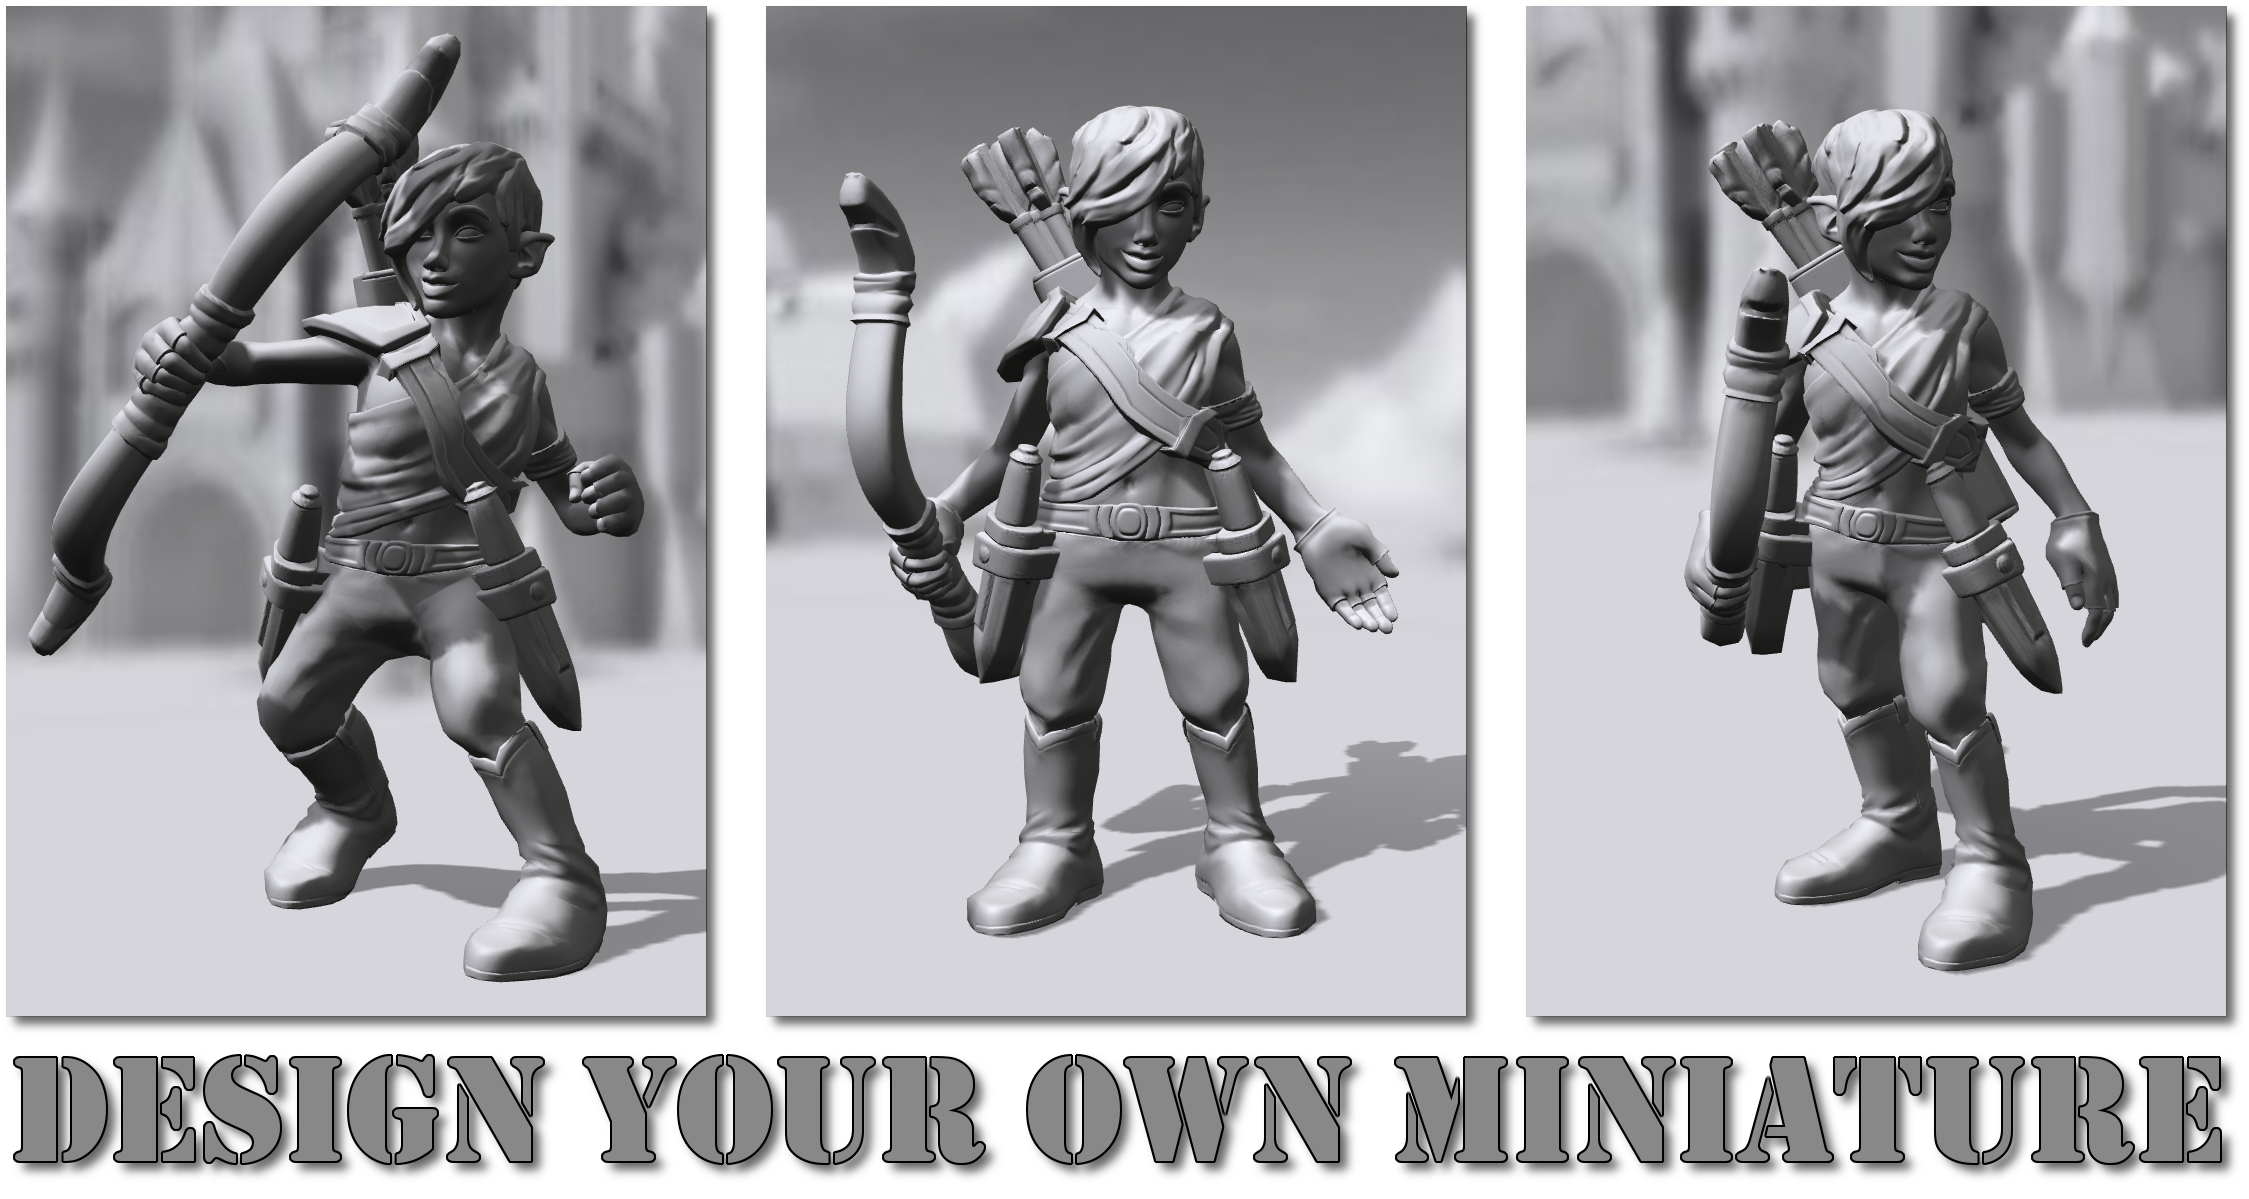 Design Your Own Miniature!